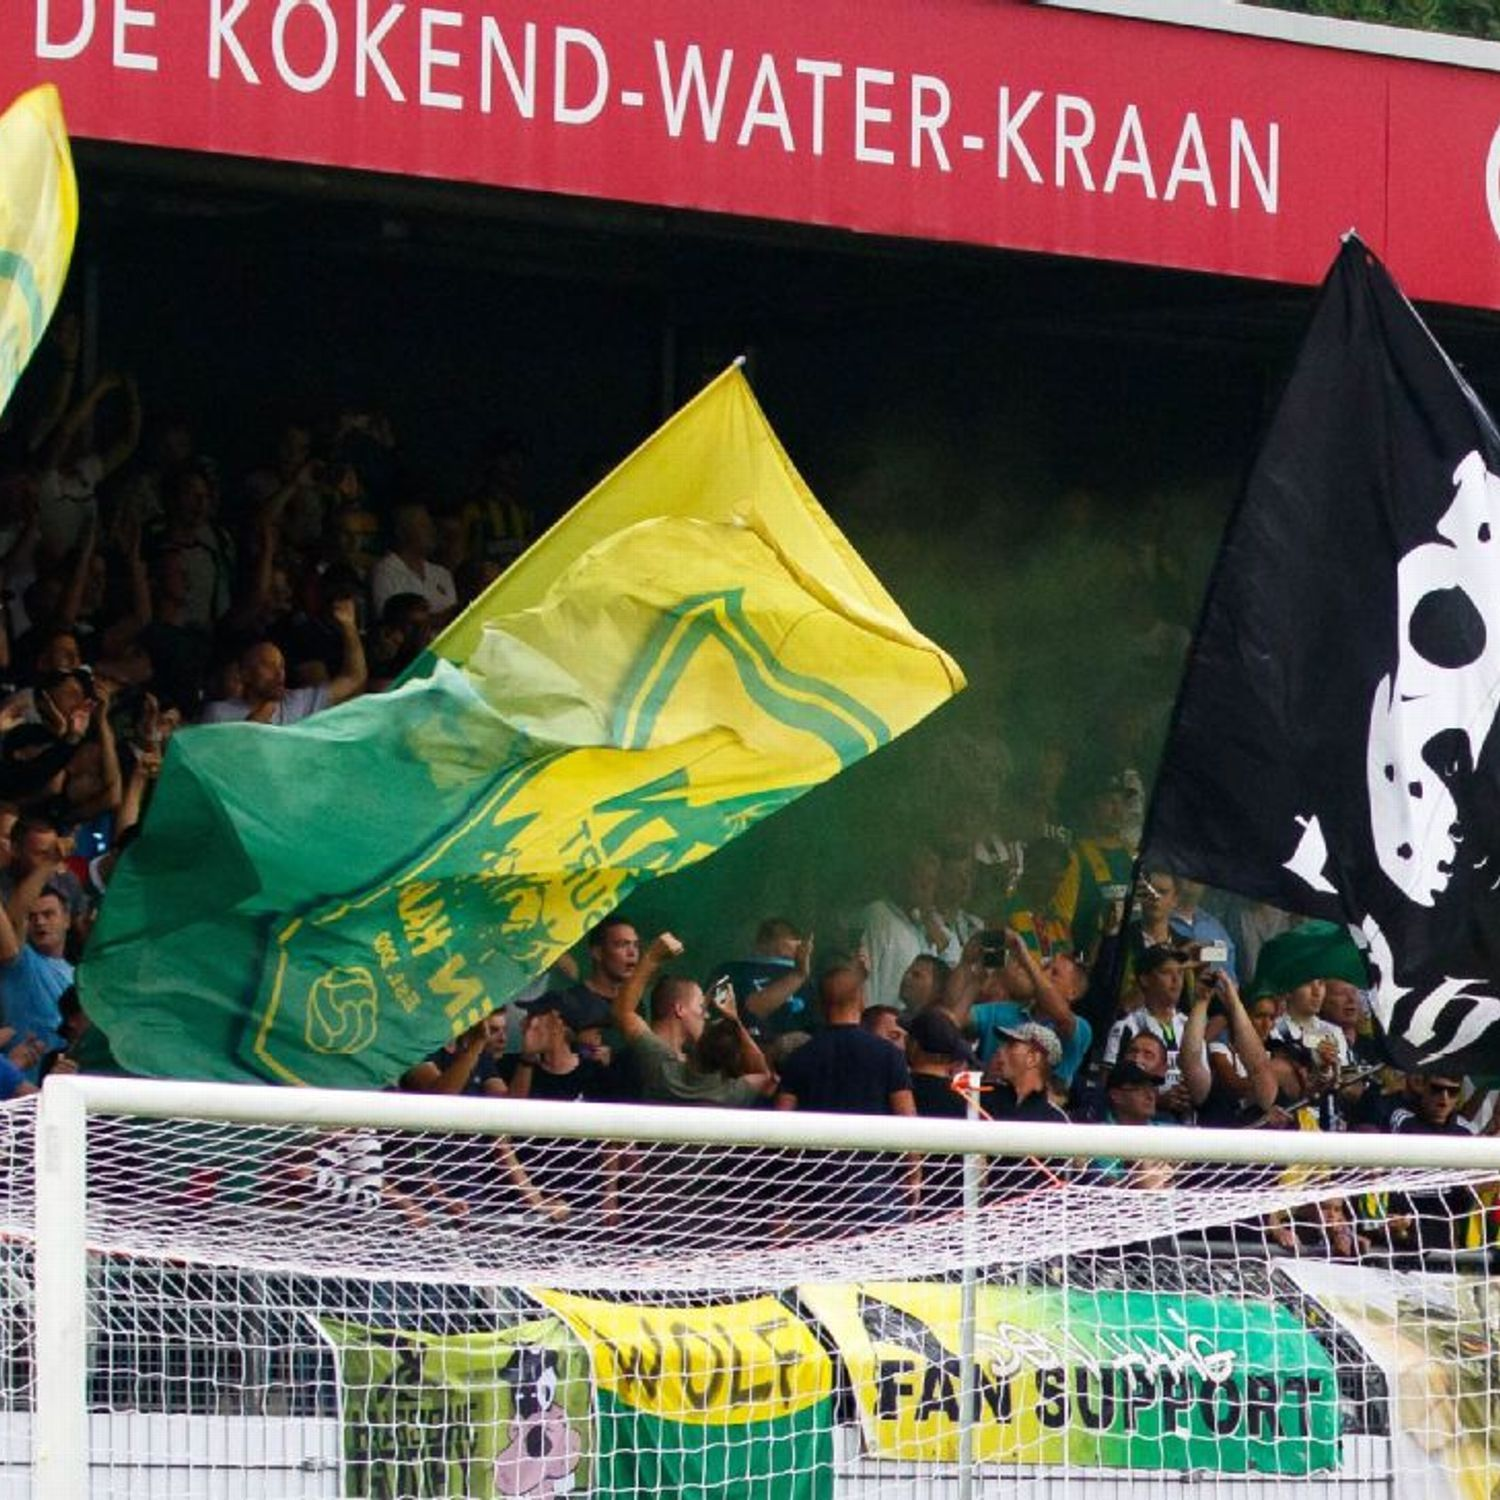 Ado Den Haag Fans Throw Cuddly Toys To Sick Children At Feyenoord Game Sick Kids Cuddly Toy Cuddly